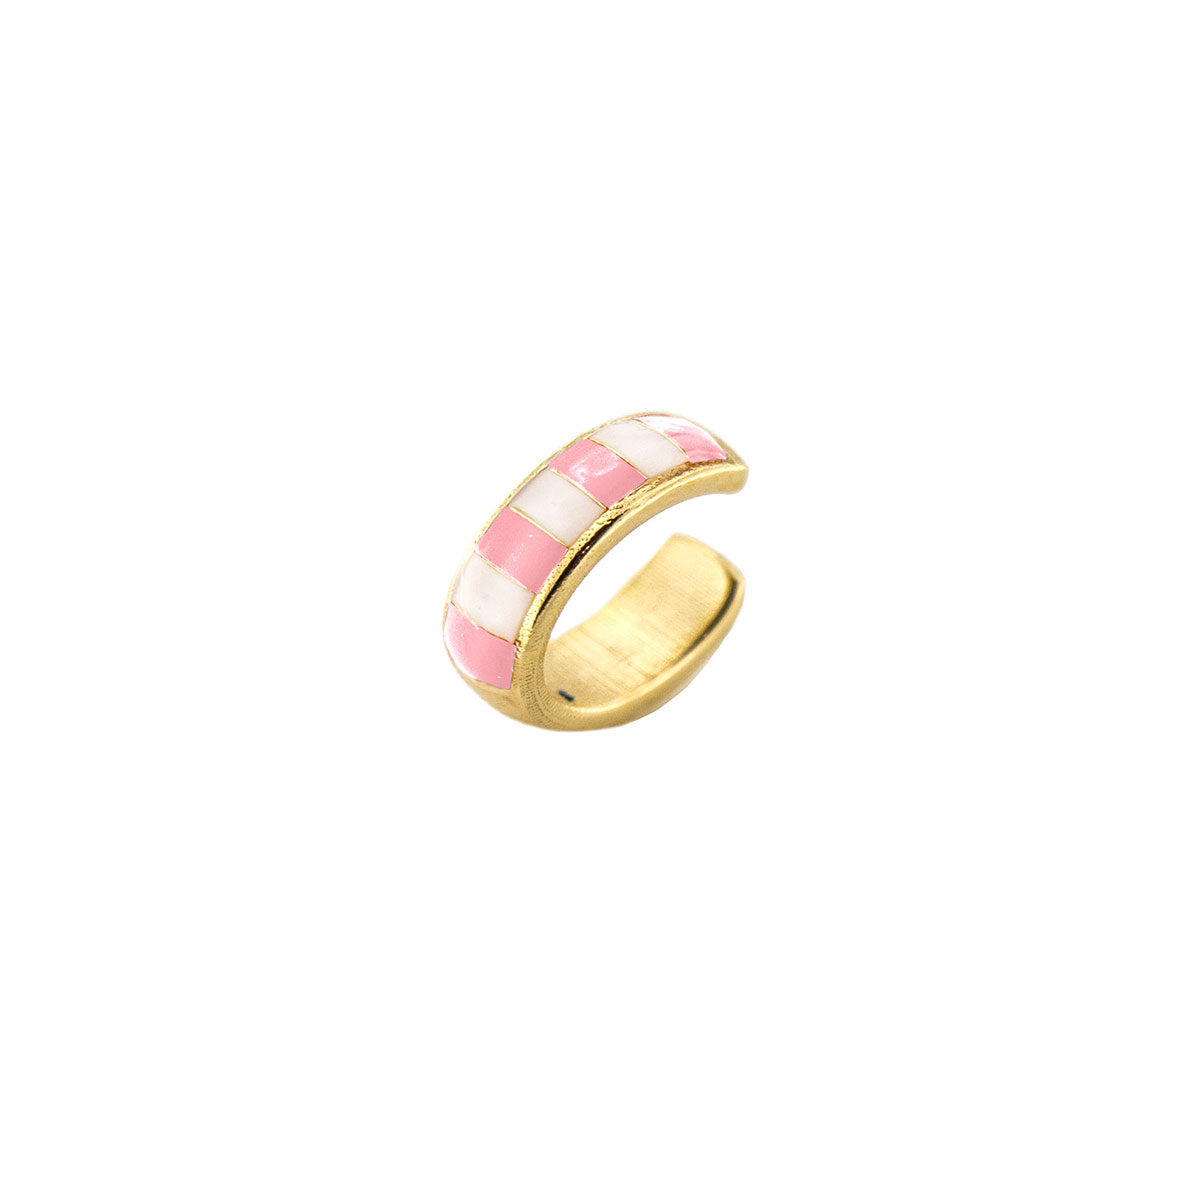 Earcuff - Earcuff enameled with pink stripes - 1 | Rue des Mille